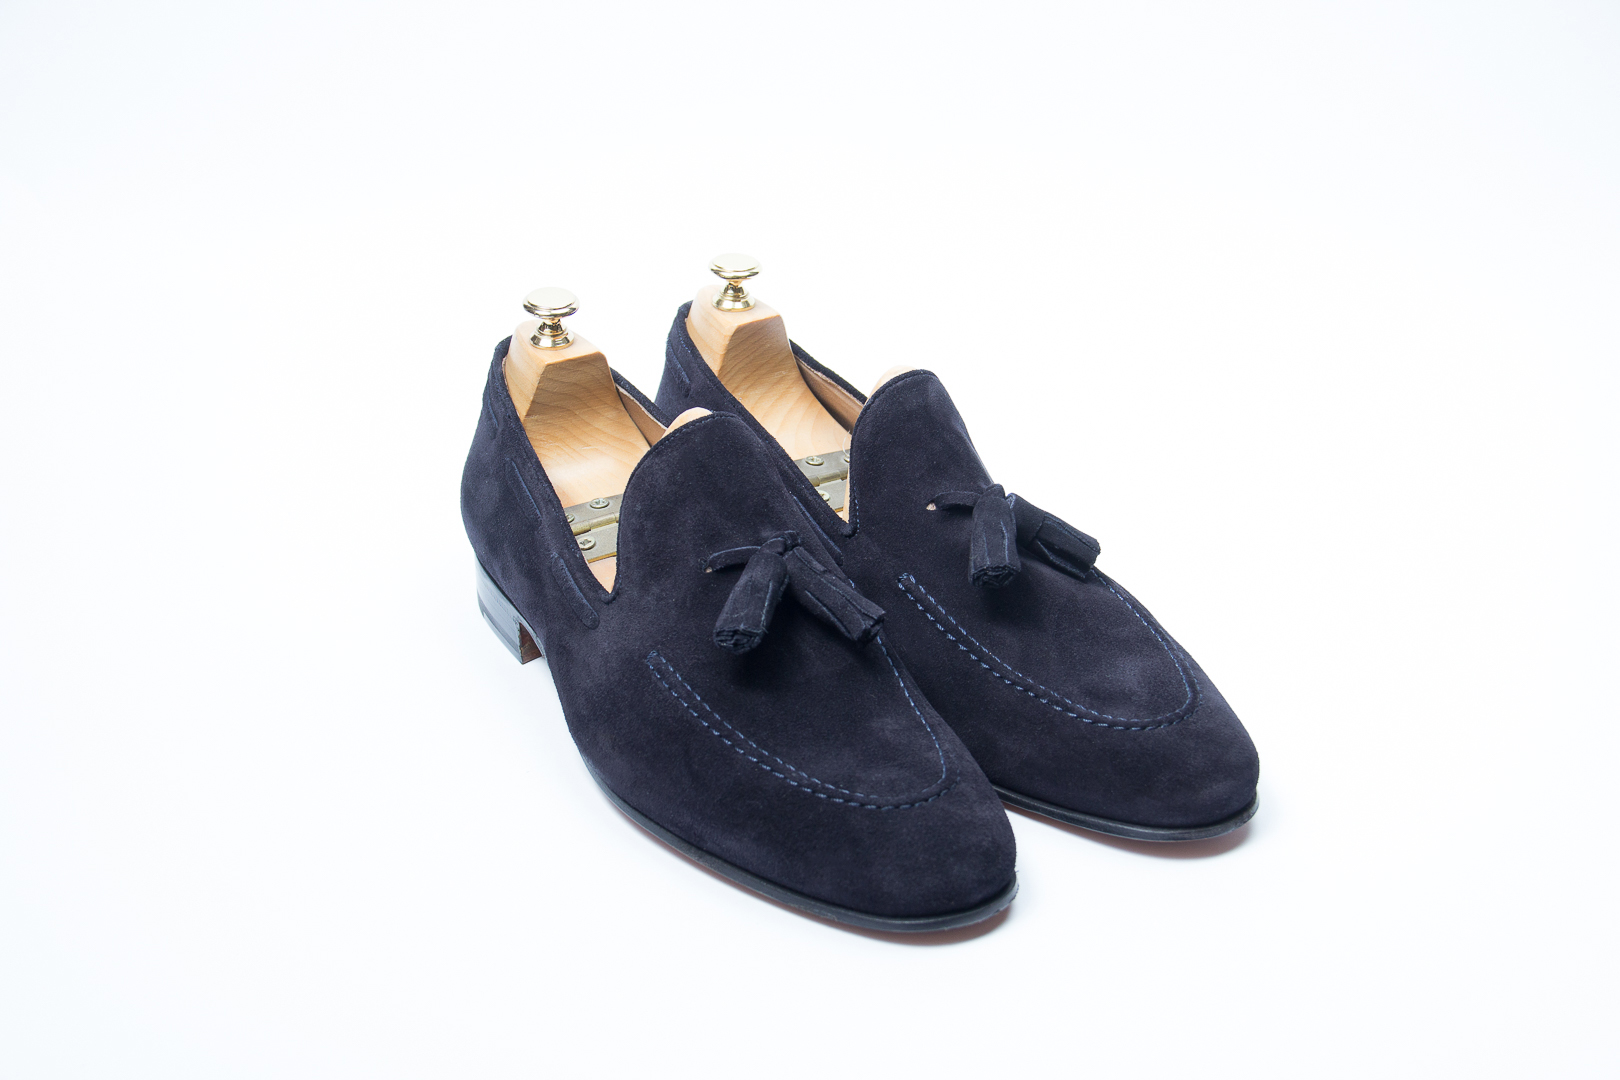 cfffbac49f Laudadio Shoes